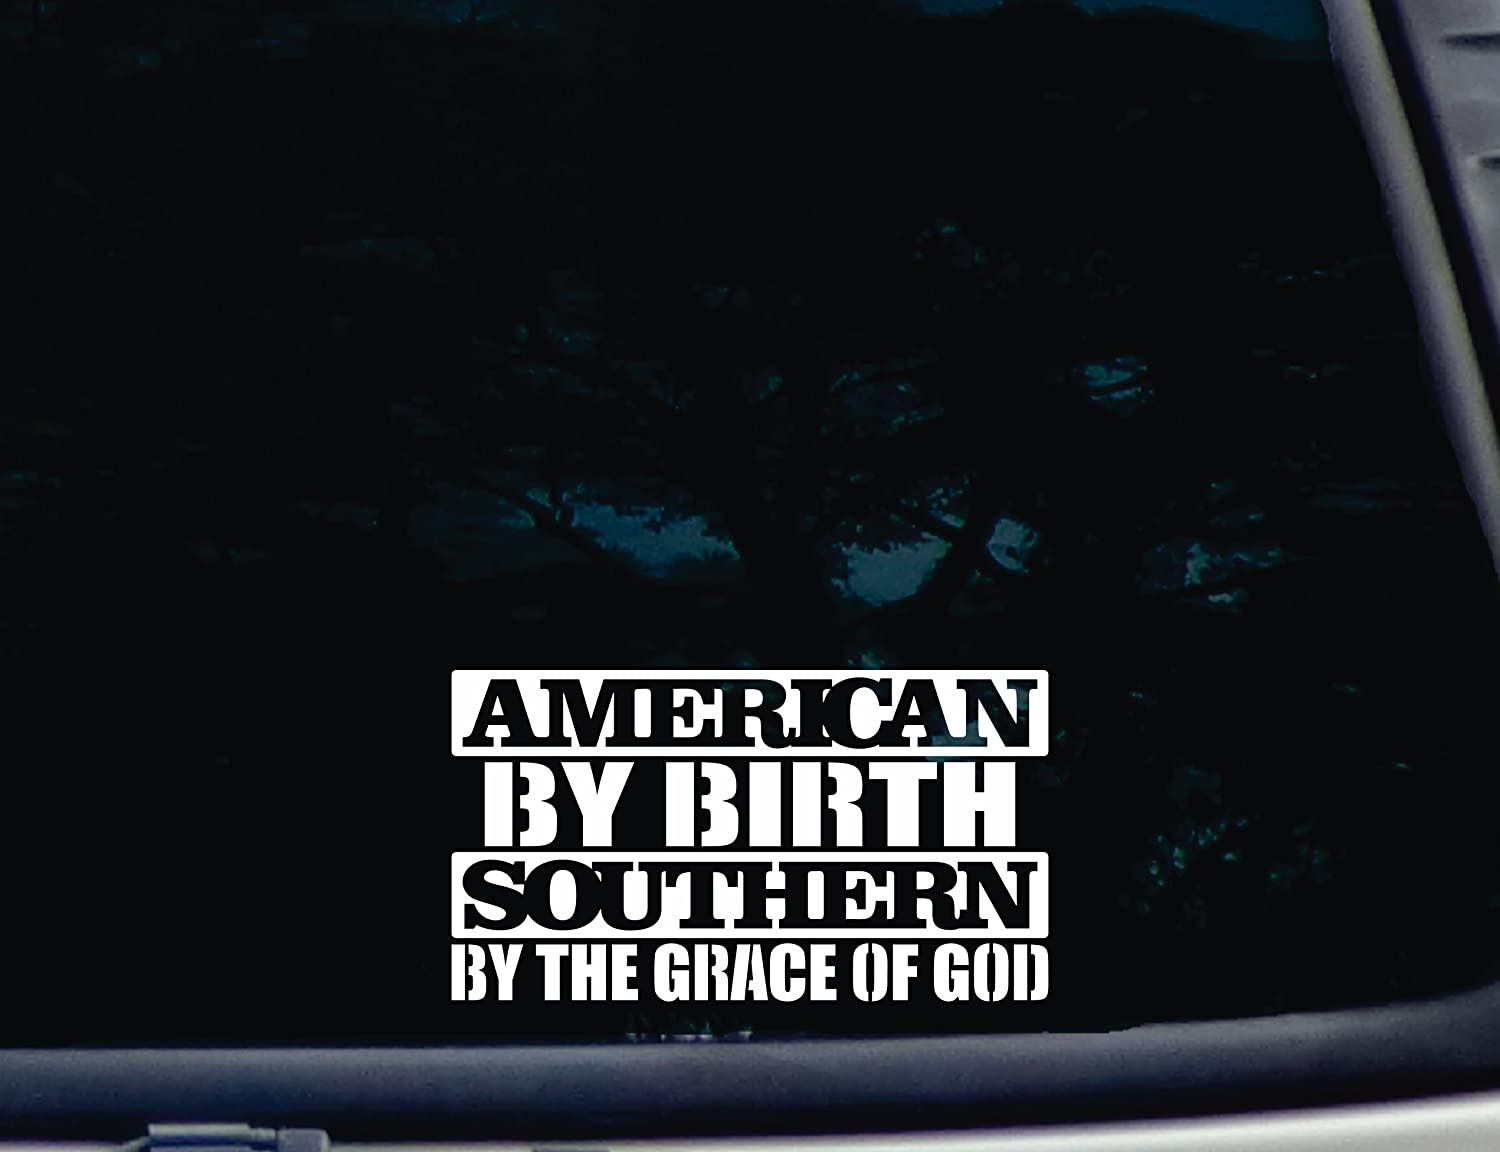 American by birth southern by the grace of god 6 3 4 x 3 3 4 die cut vinyl decal for window car truck tool box virtually any hard smooth surface